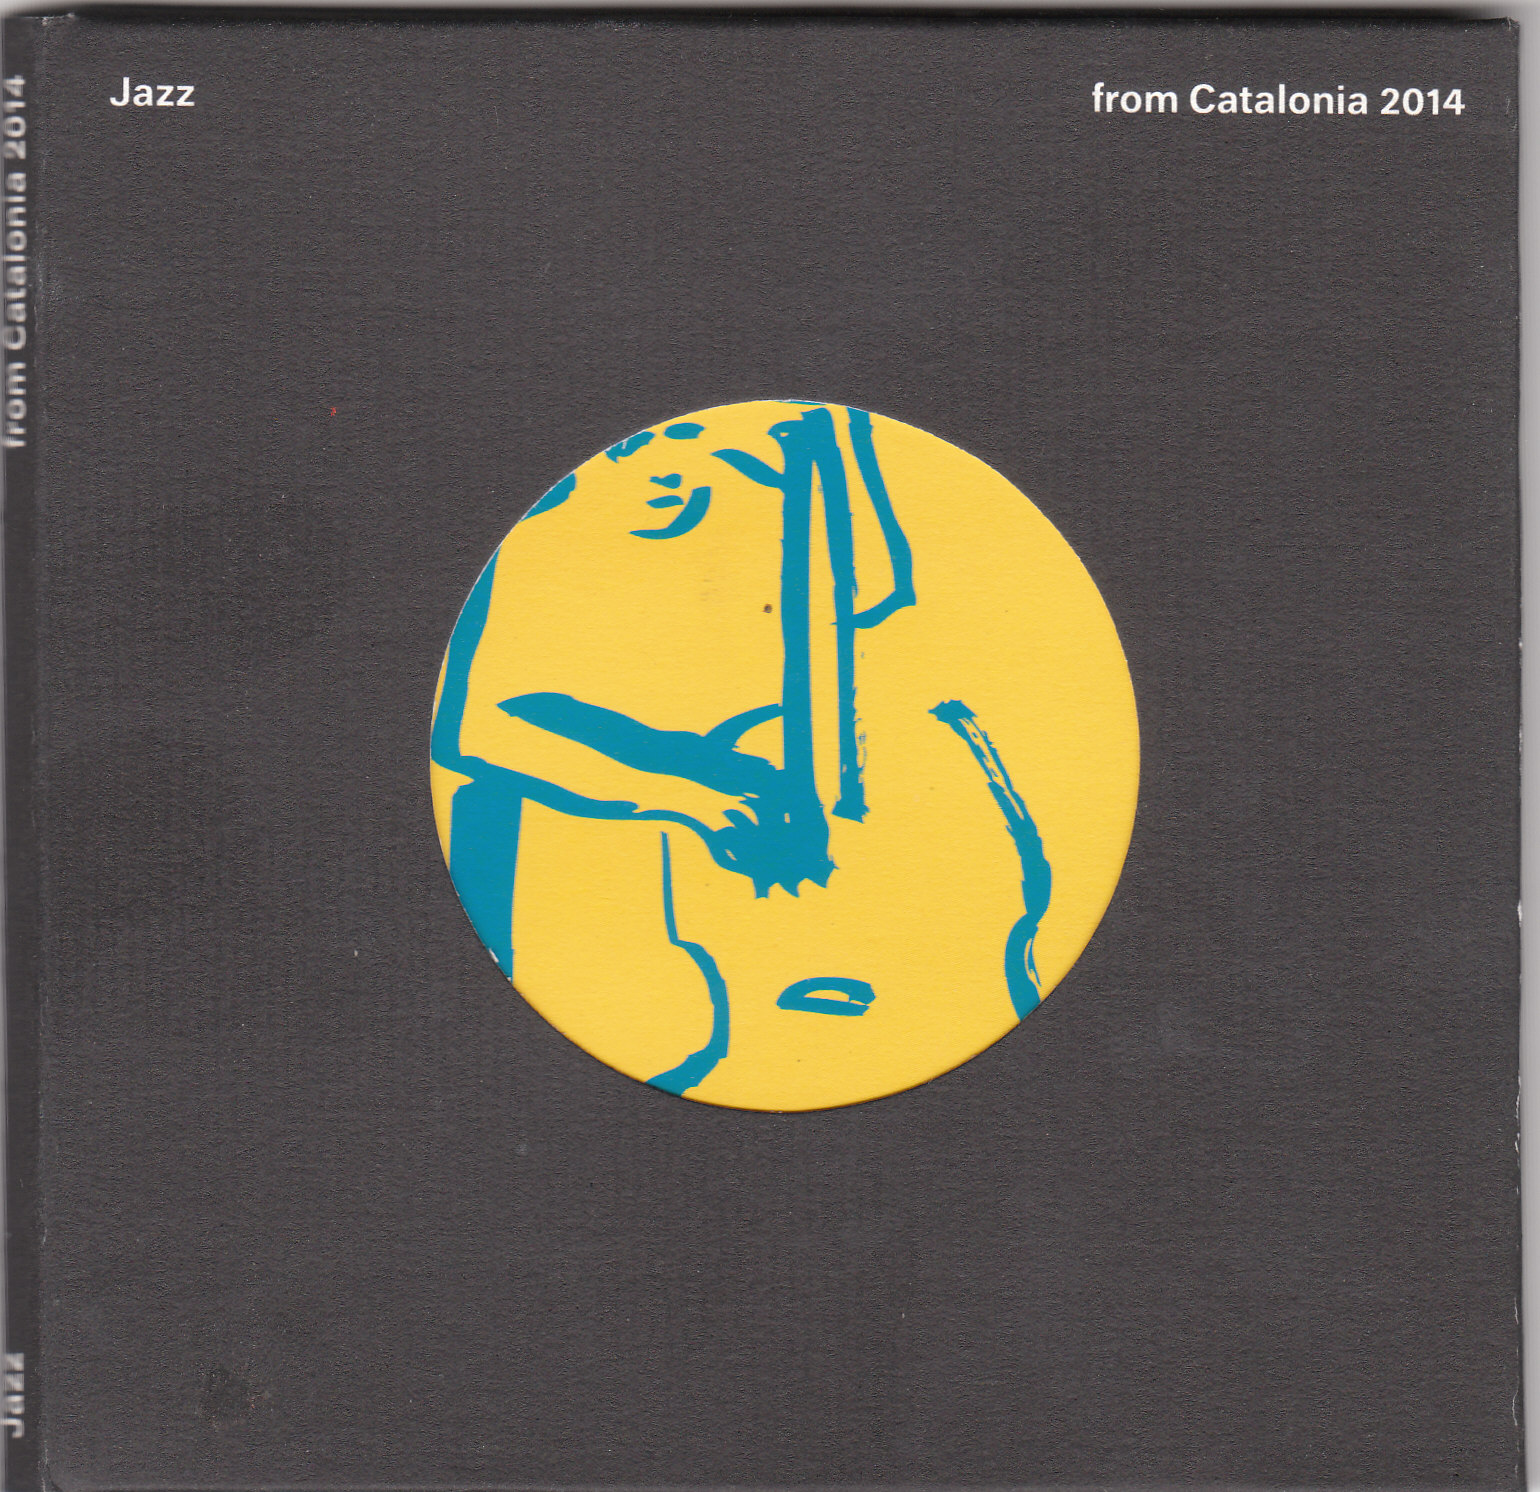 Jazz from Catalonia 2014_0001.jpg